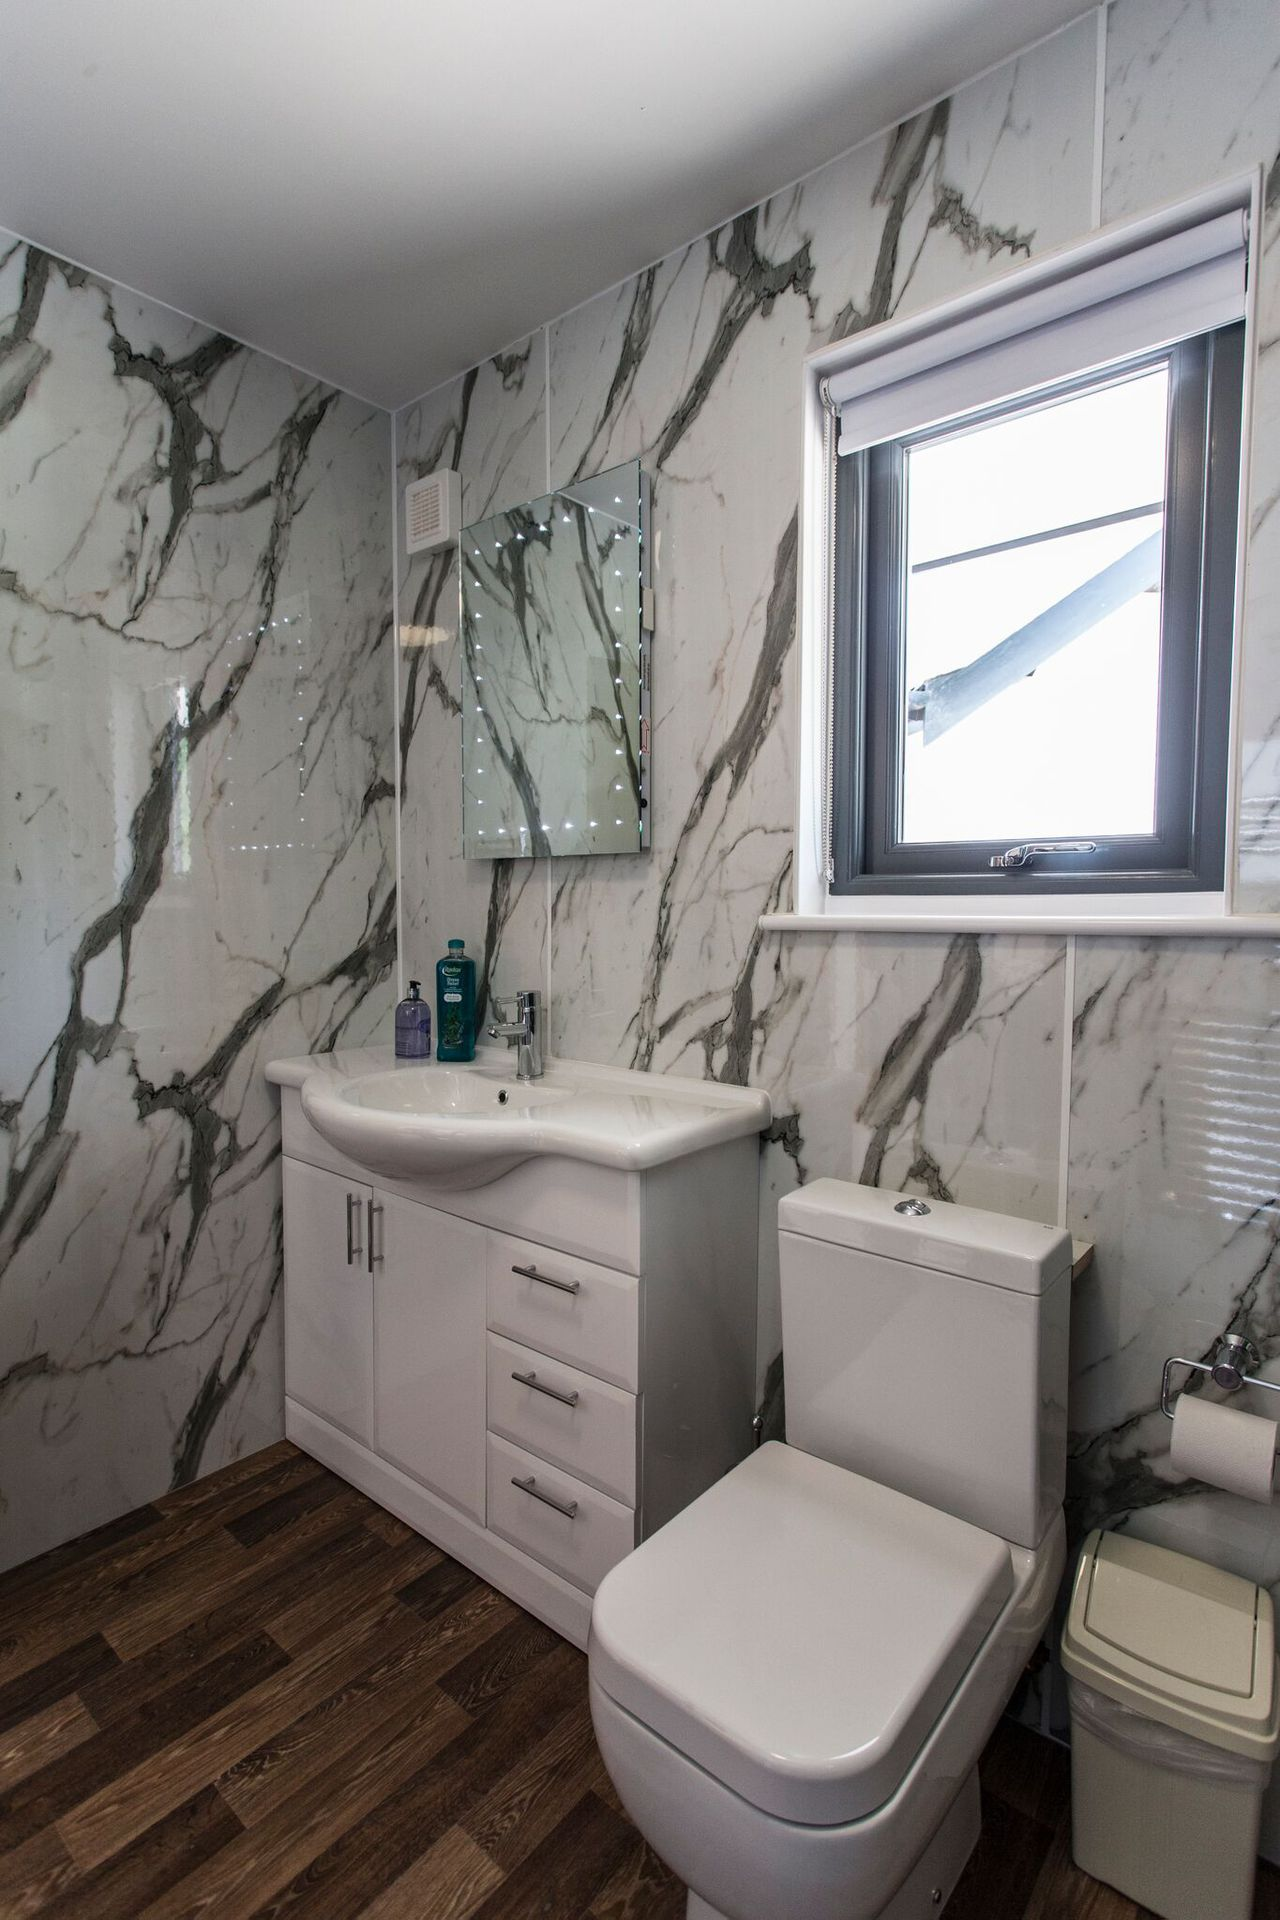 Tealby Bathroom 1 Preview